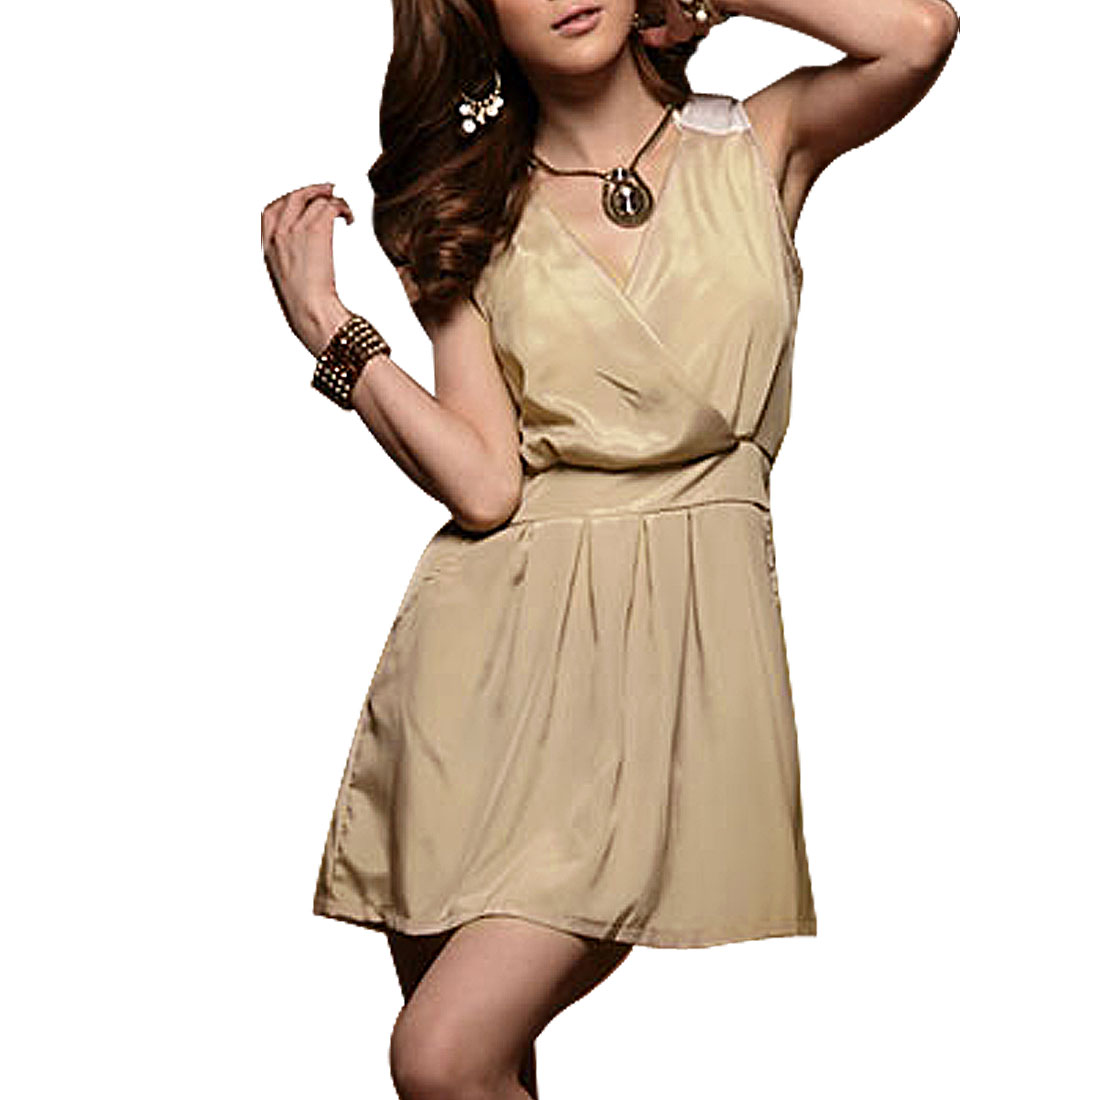 White Patch Shoulder Khaki Crossover V Neck Sleeveless Mini Dress for Woman XS